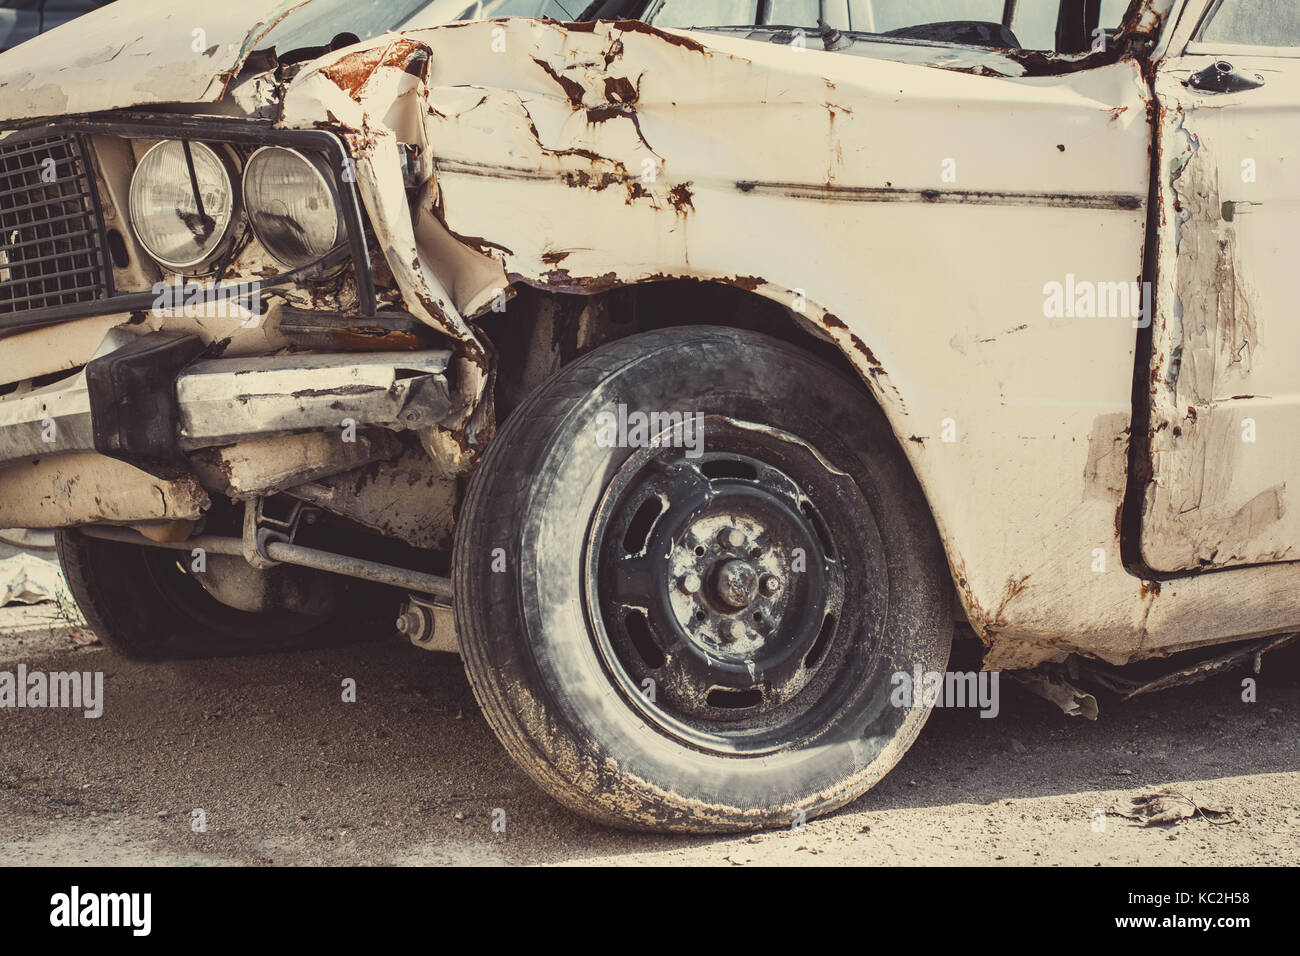 Old broken car after an accident - Stock Image